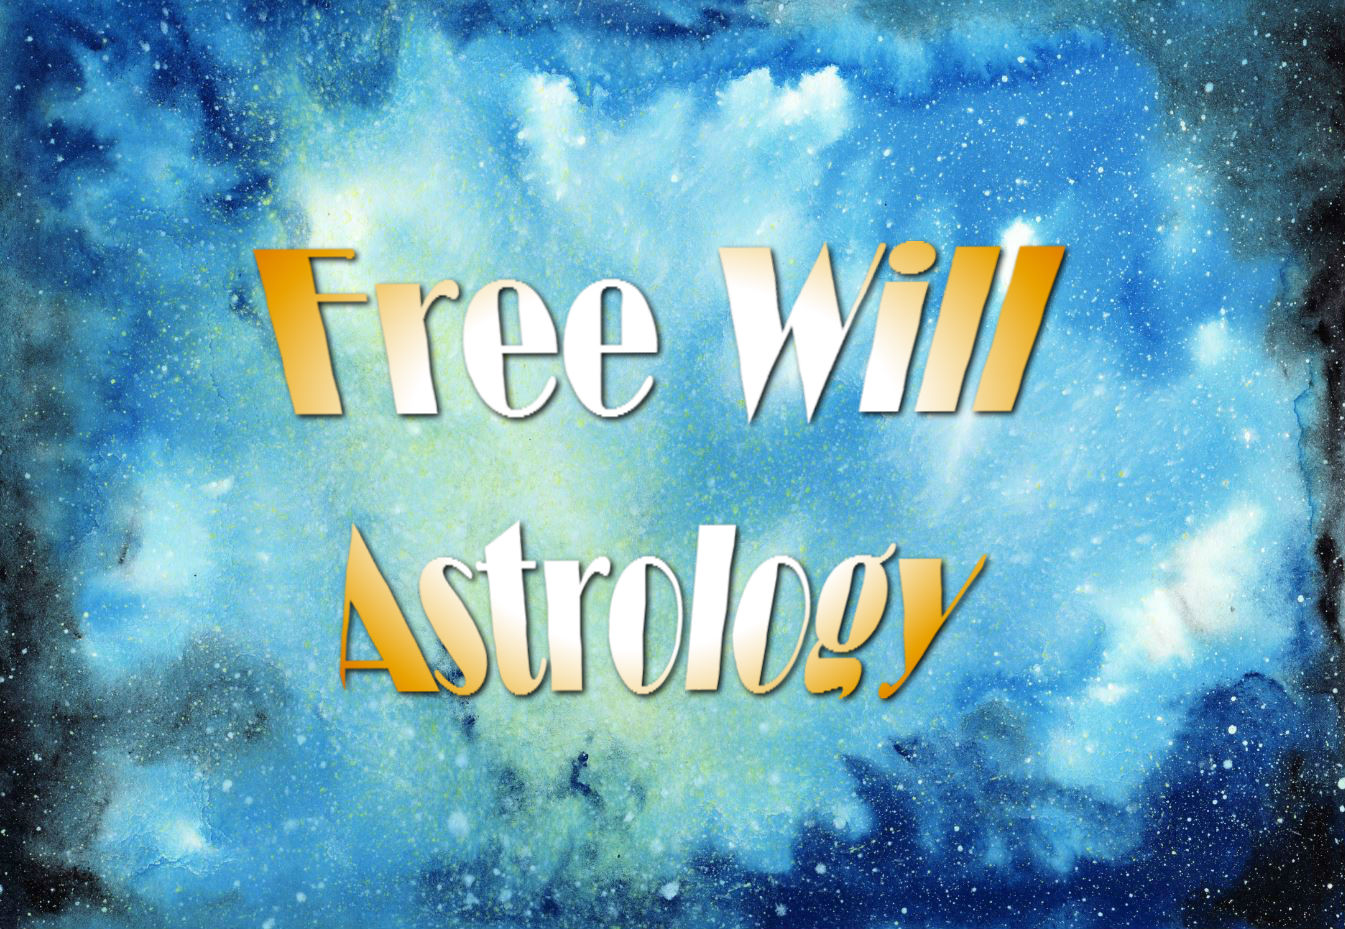 Free Will Astrology: Oct. 13-19, 2016